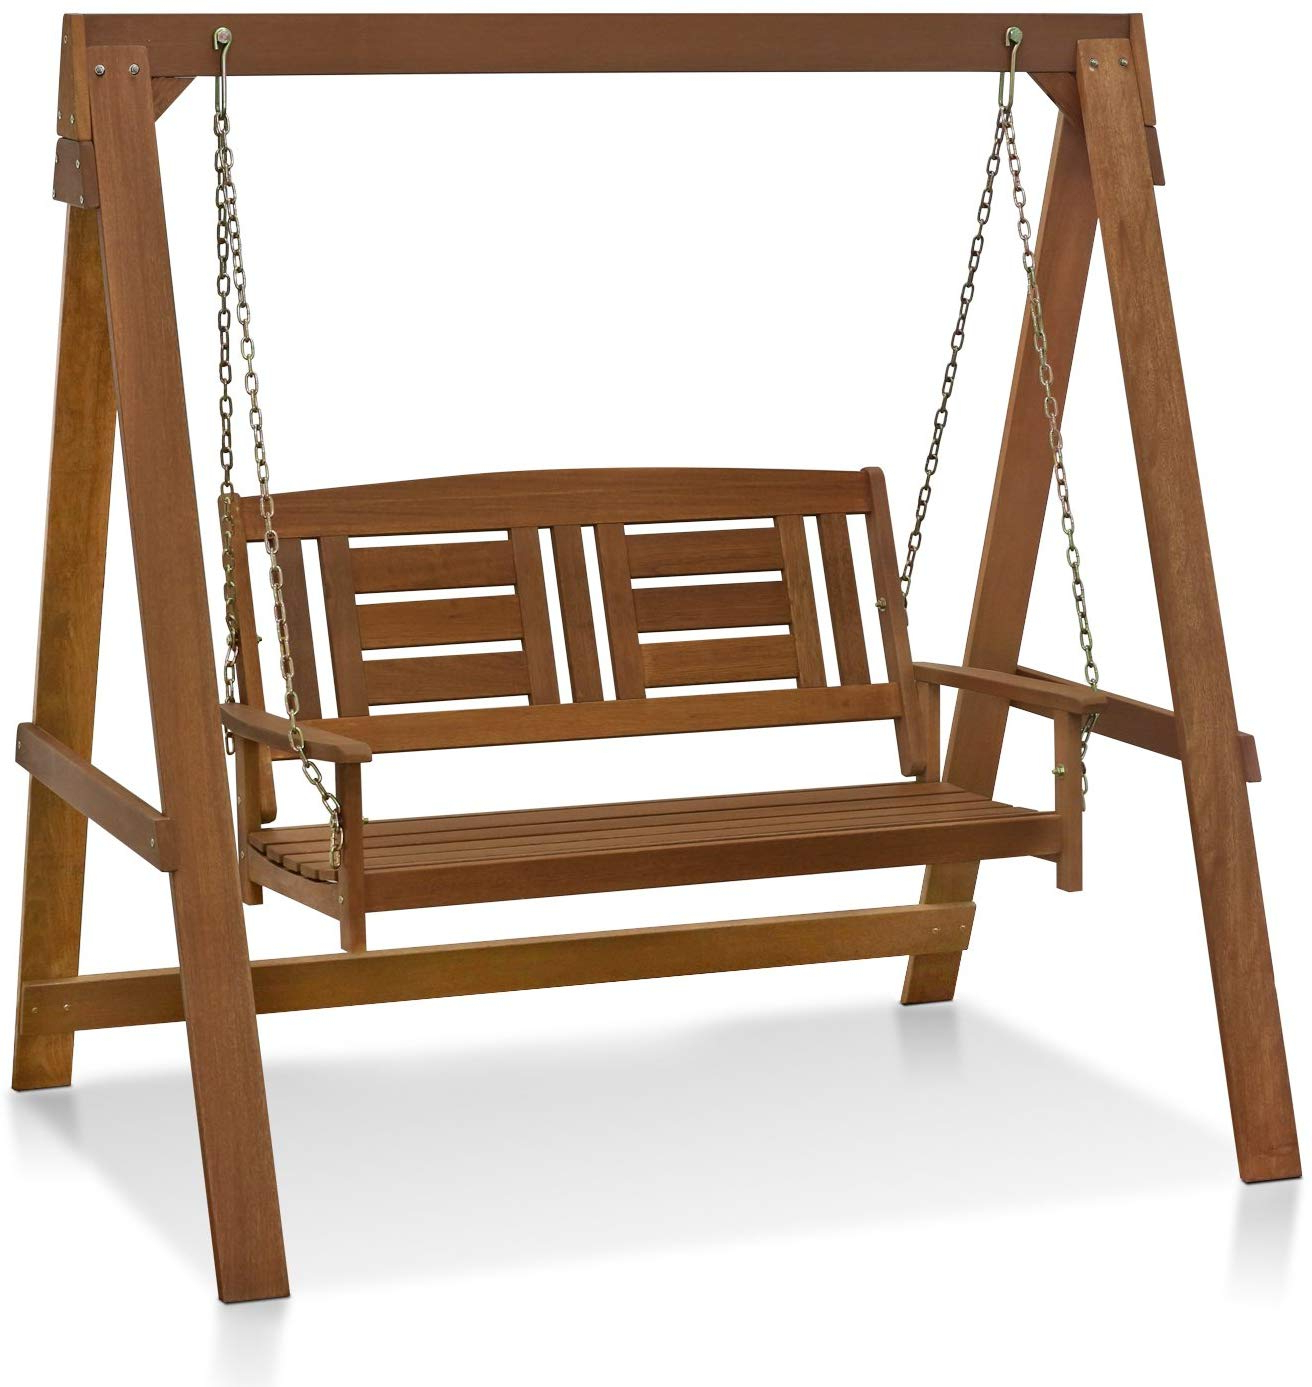 Hardwood Hanging Porch Swings With Stand Regarding Famous Furinno Fg16409 Tioman Hardwood Patio Furniture Porch Swing With Stand In  Teak Oil, 2 Seater With Frame, Natural (View 12 of 30)